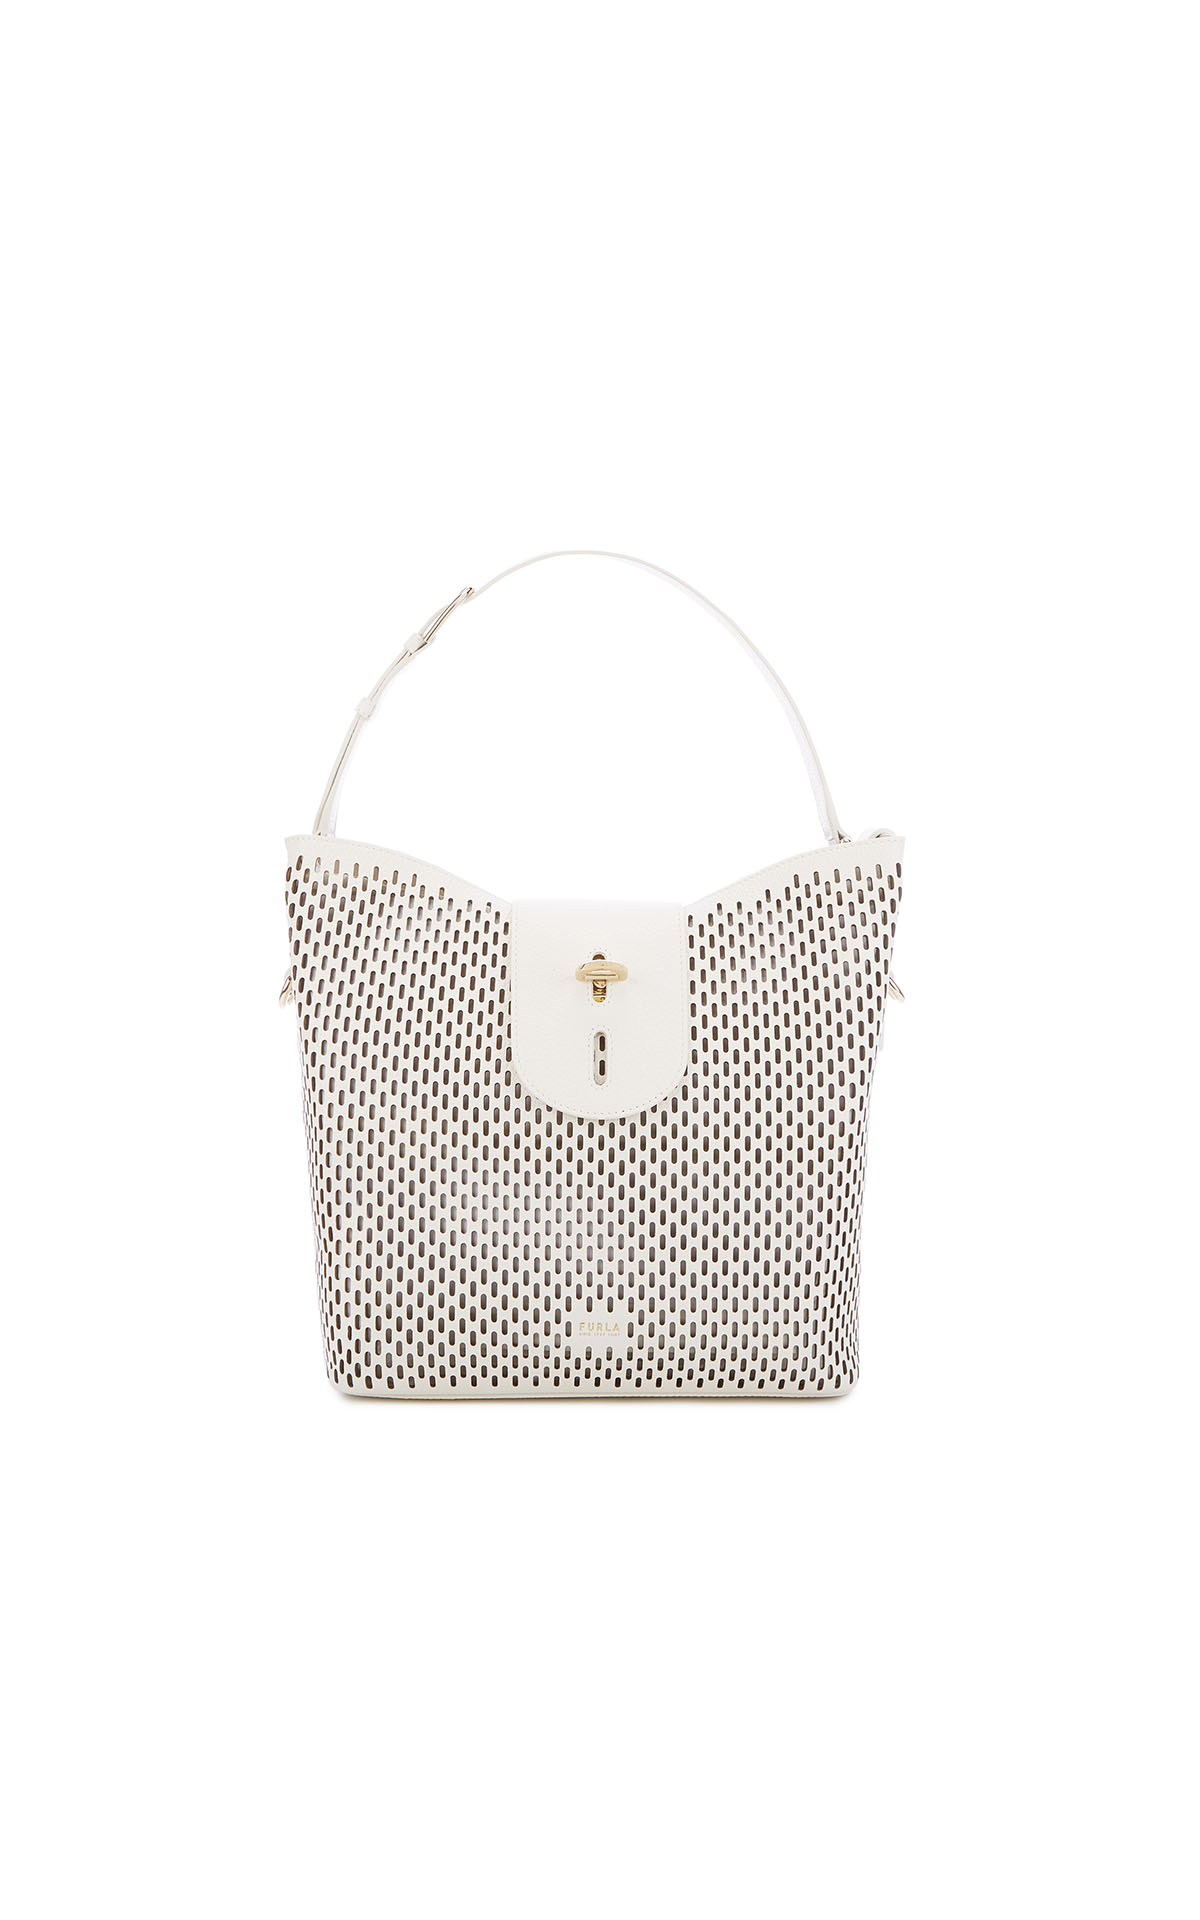 Furla net m hobo at the bicester village shopping collection